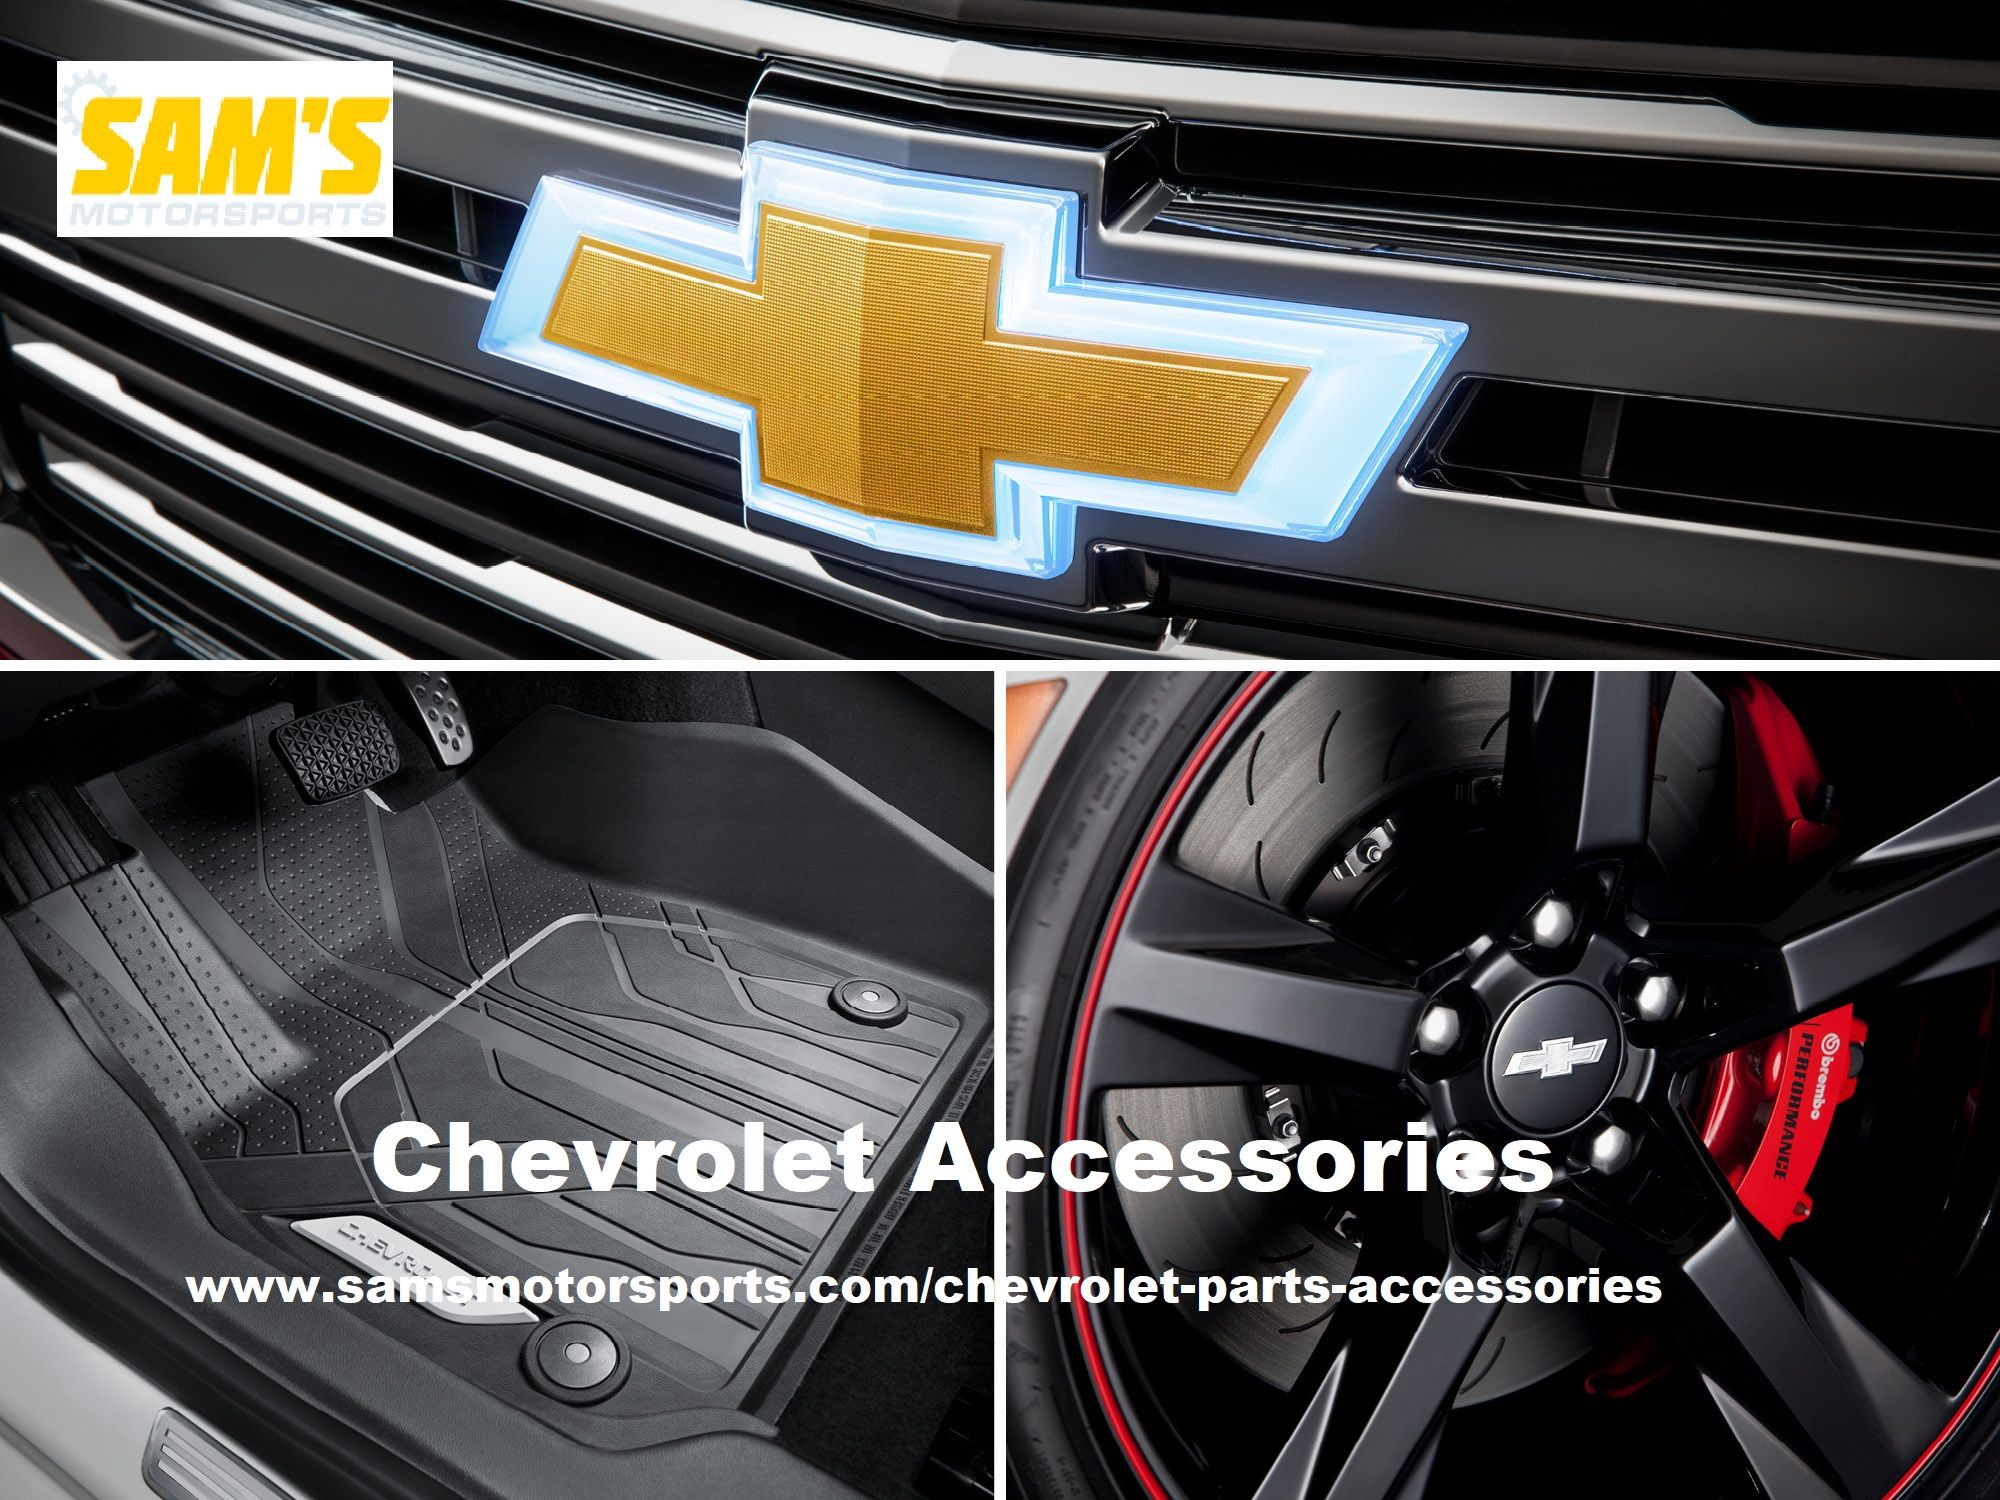 Sam S Offer Chevy Accessories Headlights Floor Mats Running Boards And Parts For Lower Prices Brow Chevy